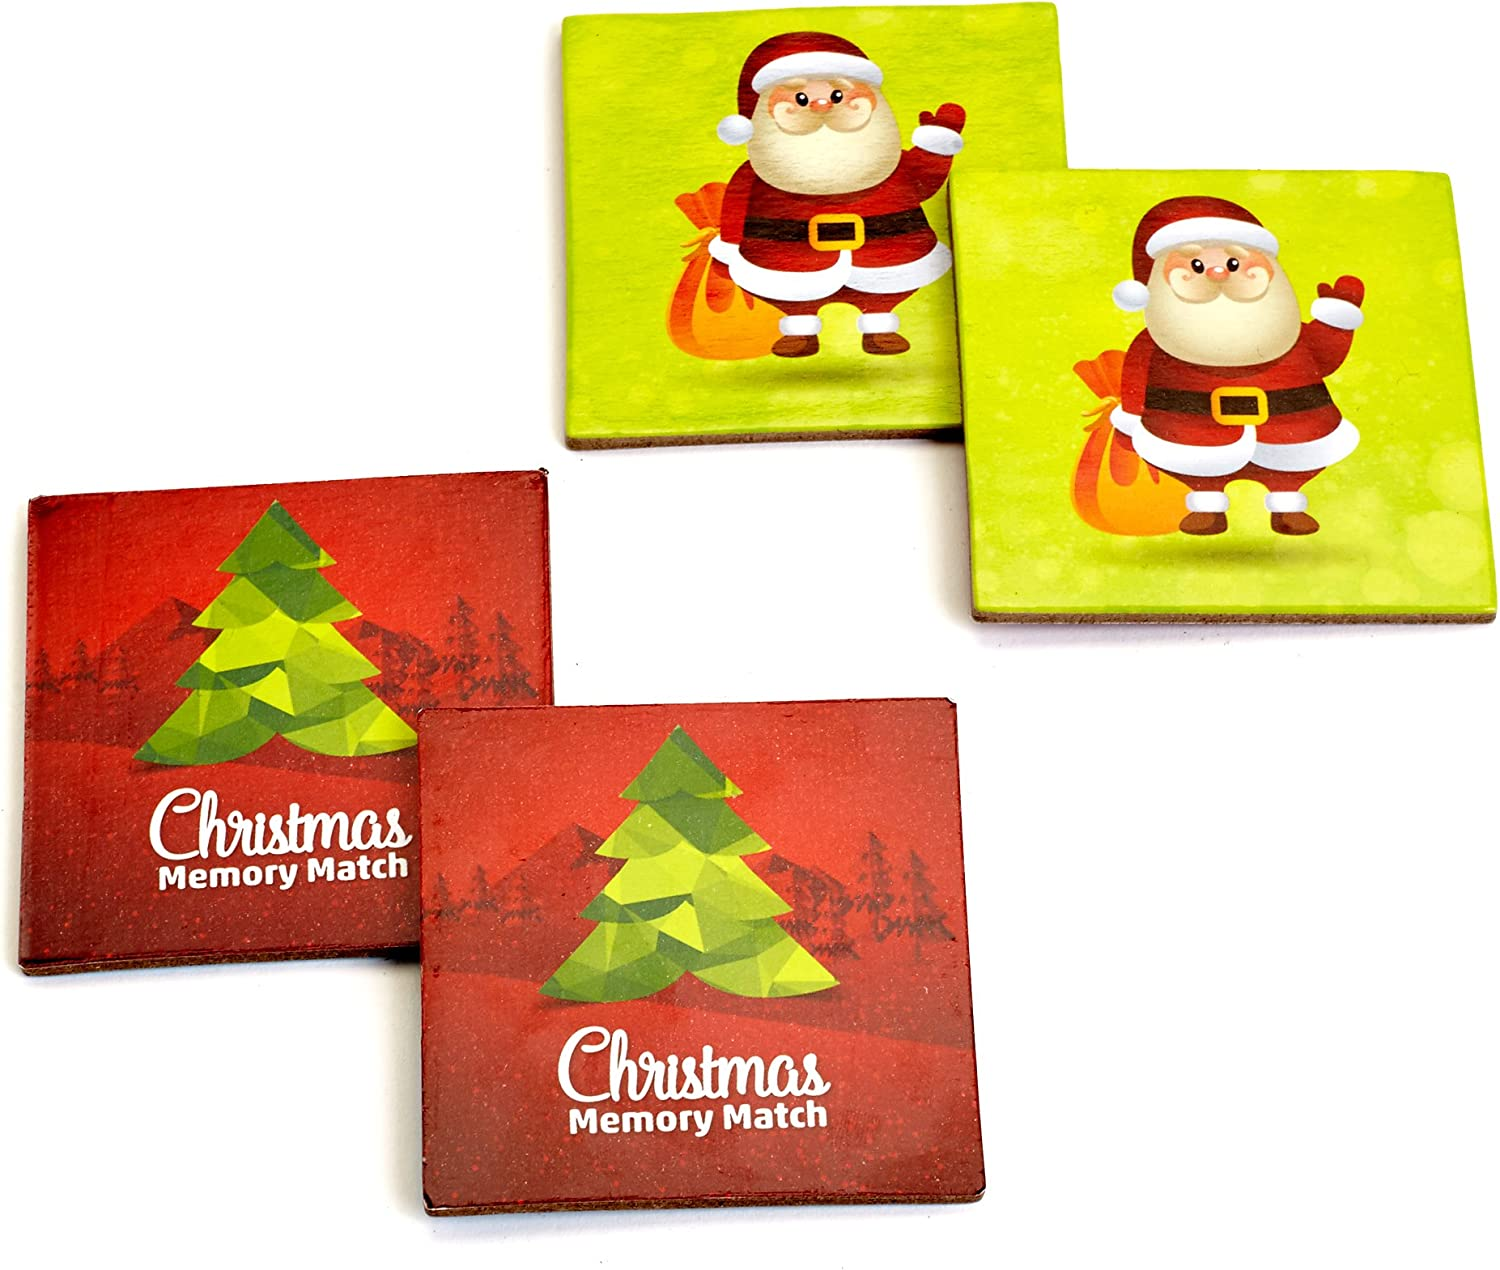 Amazon Com Mind Tools Christmas Educational Memory Match Game For Toddler Preschool And Kids Great Memory Matching Card Games For Recognition Memory Skills Practice 48 Durable Tiles Toys Games